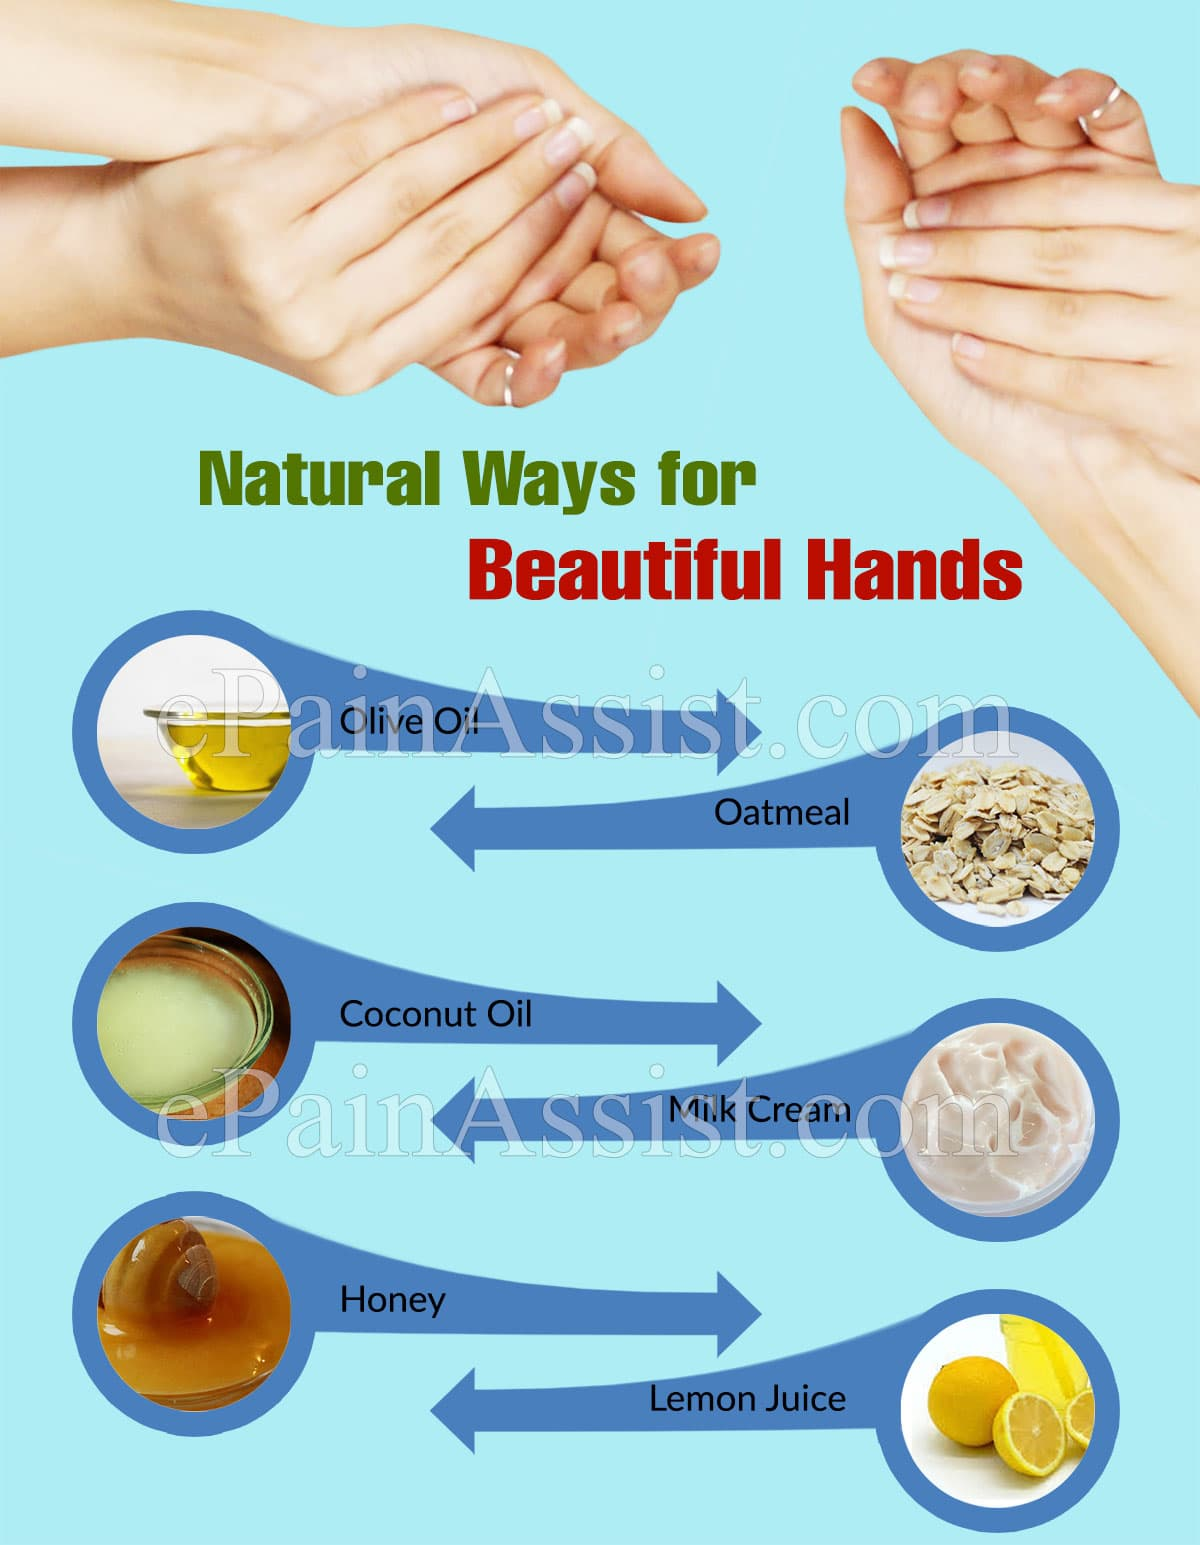 Natural Ways for Beautiful Hands